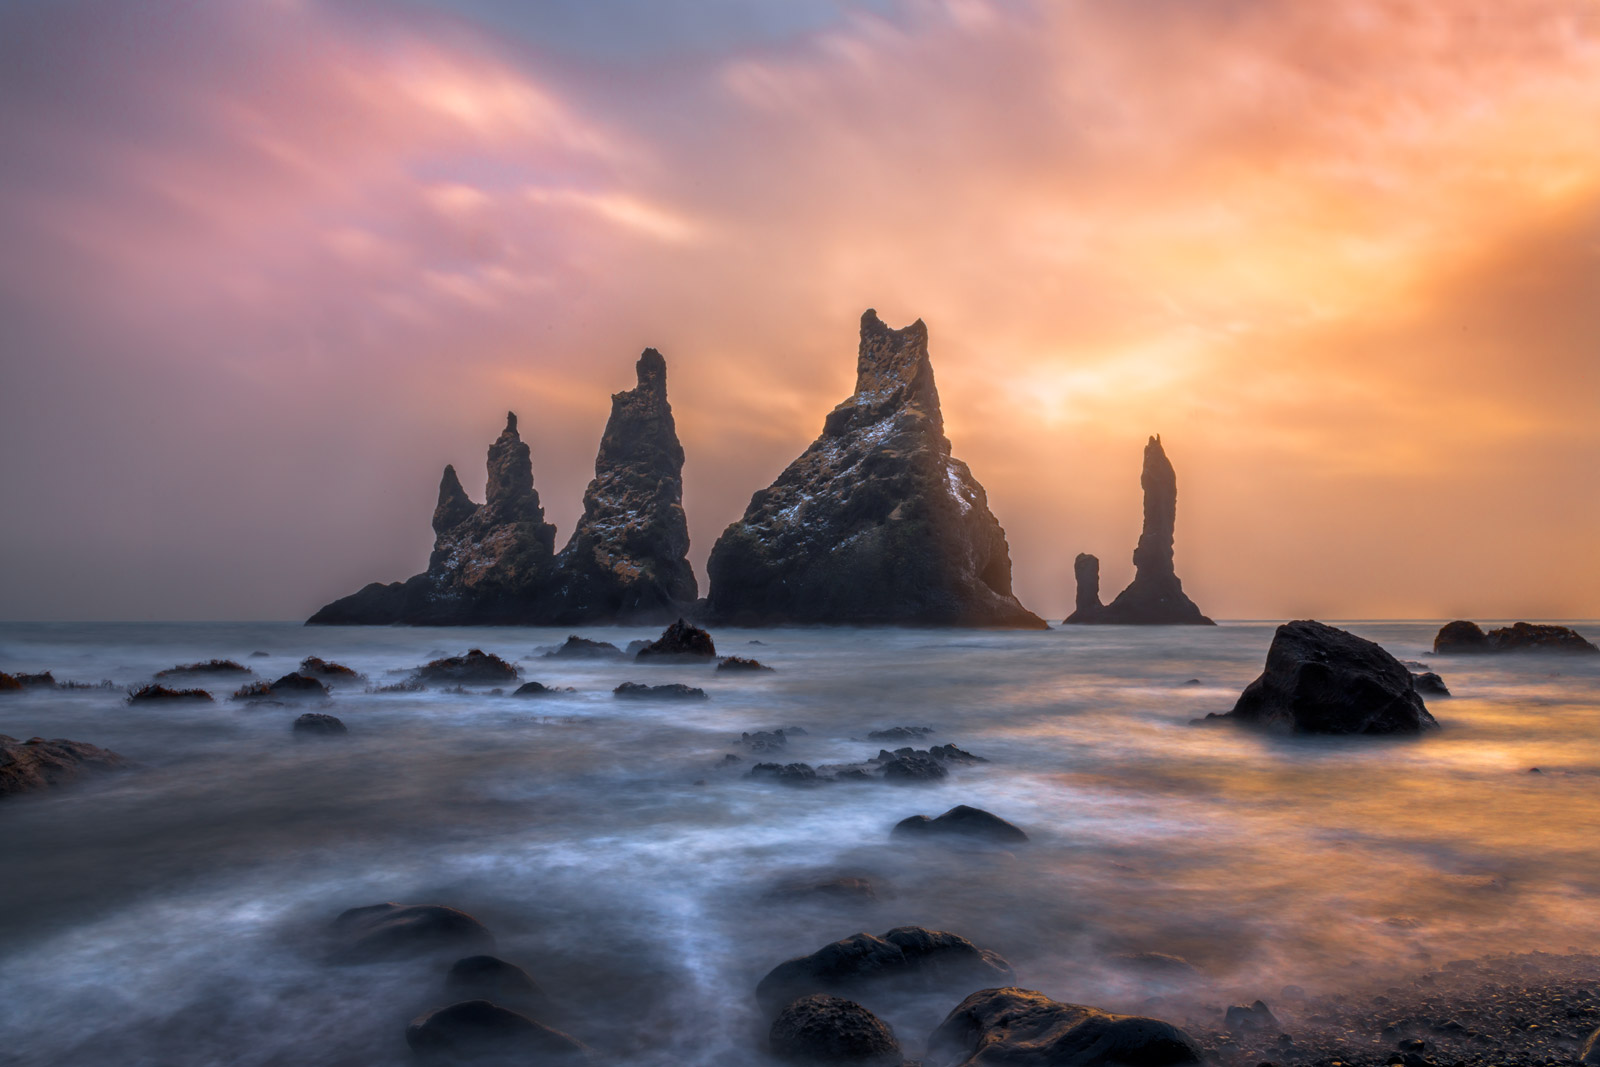 Iceland, Vik, Black, Rock, Beach, Sea, Stacks, Sunset